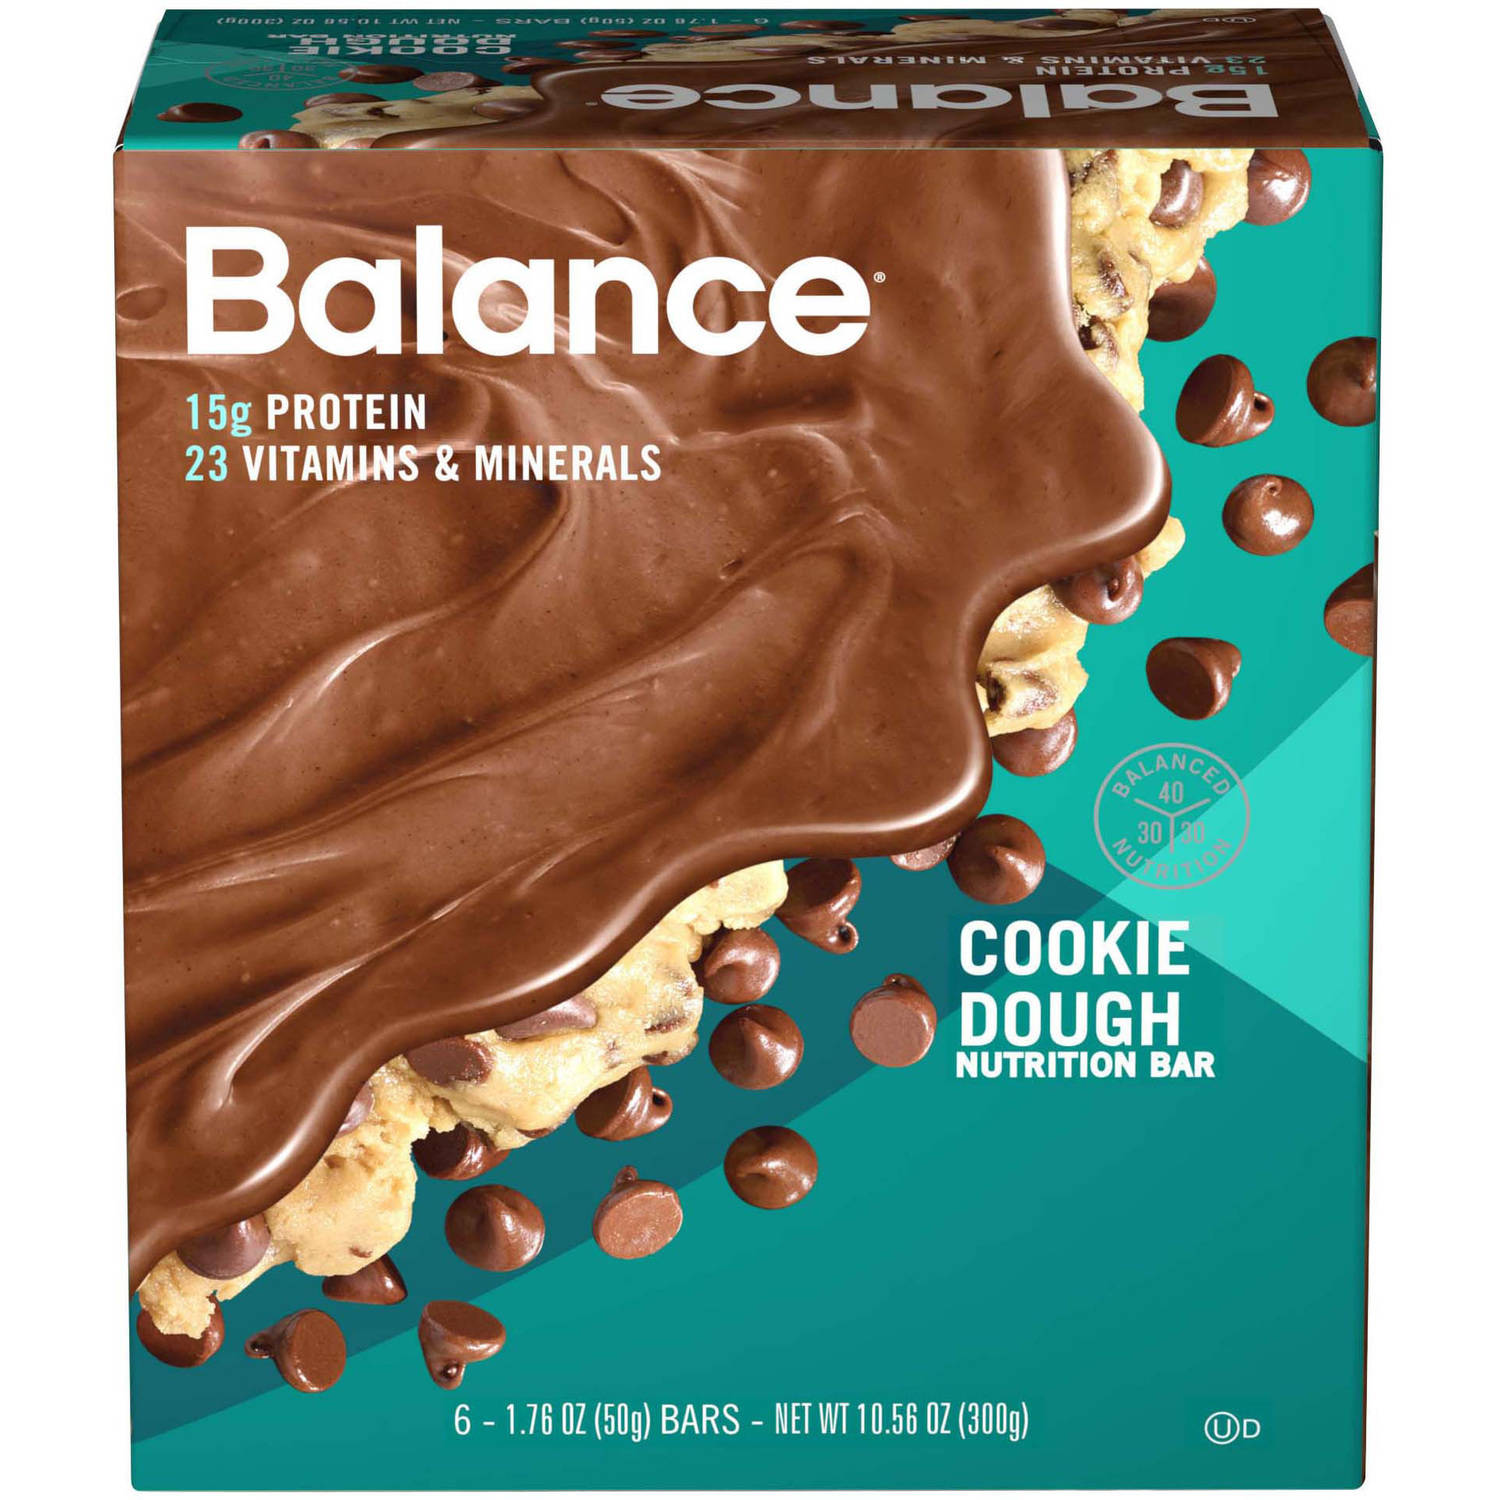 Balance Cookie Dough Nutrition Energy Bar, 1.76 oz, 6 count